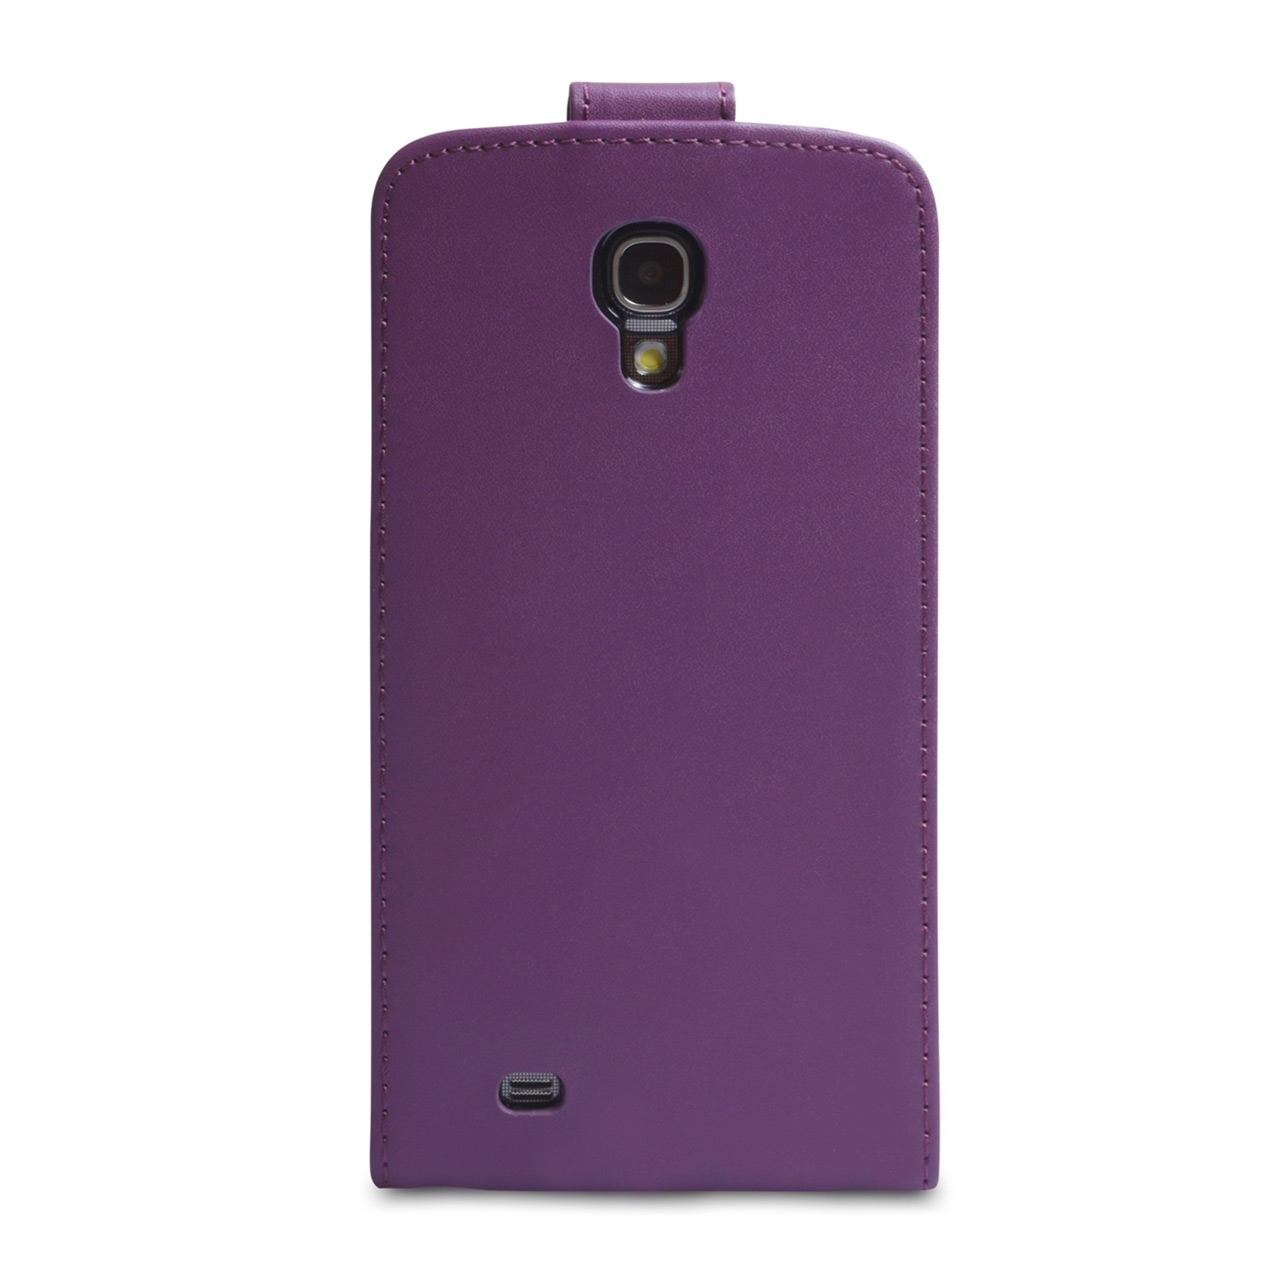 YouSave Samsung Galaxy Mega 6.3 Leather Effect Flip Case - Purple